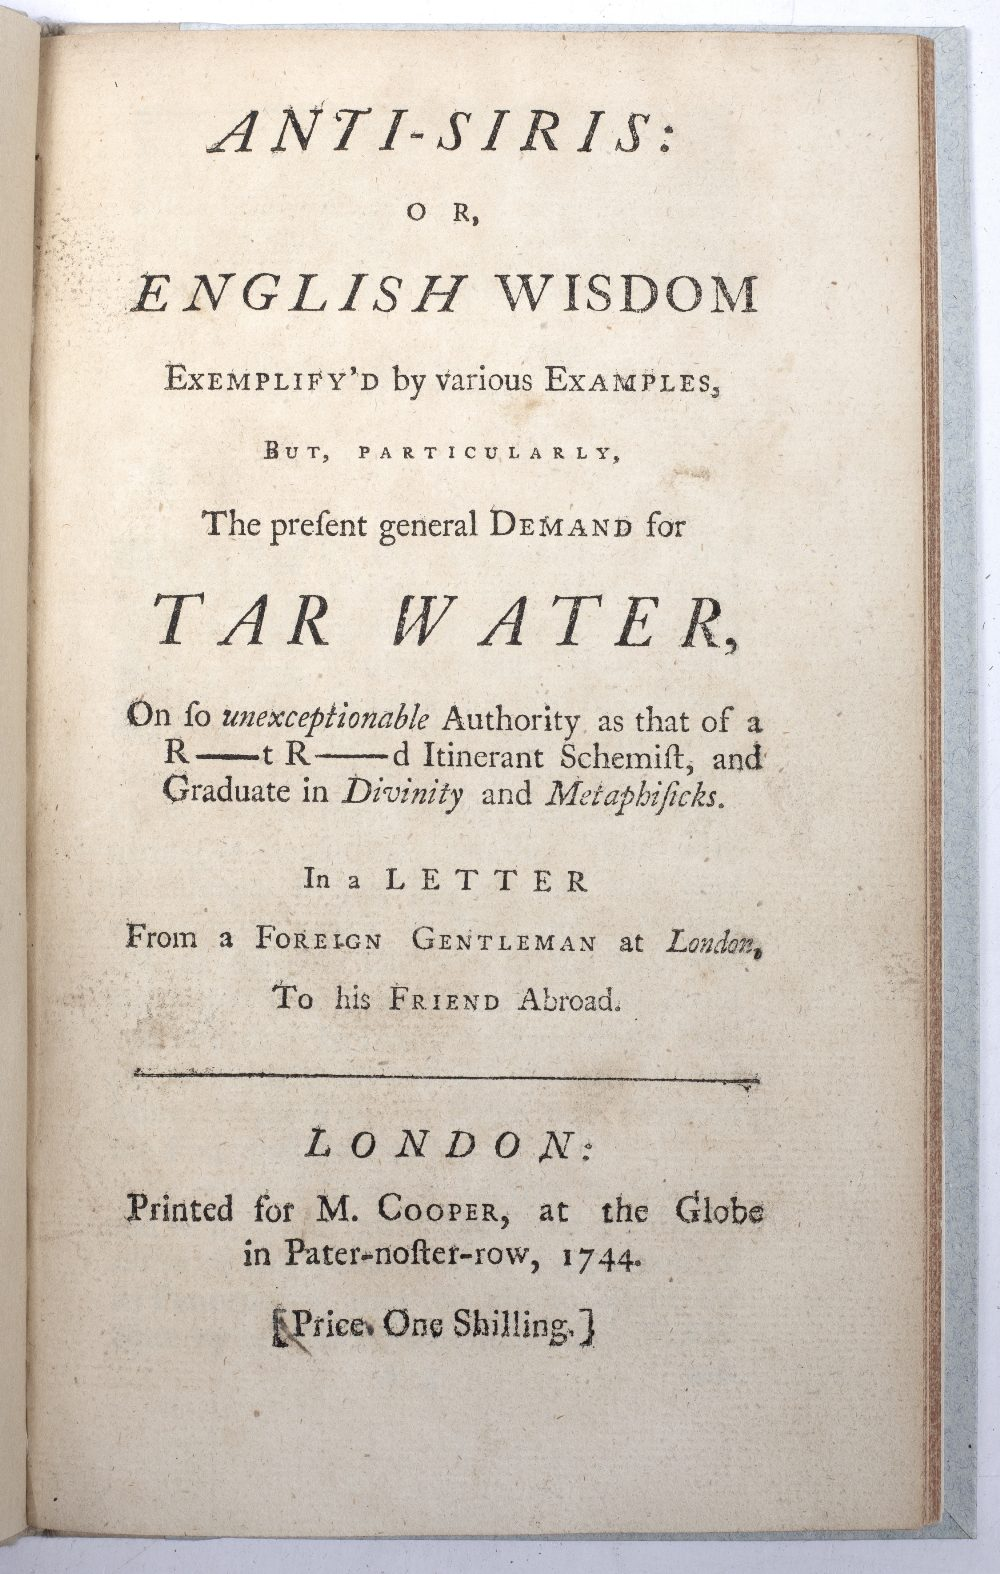 TWO 18TH CENTURY MEDICAL PAMPHLETS: 'Anti-Siris or English Wisdom exlemplify'd by various examples - Image 2 of 2